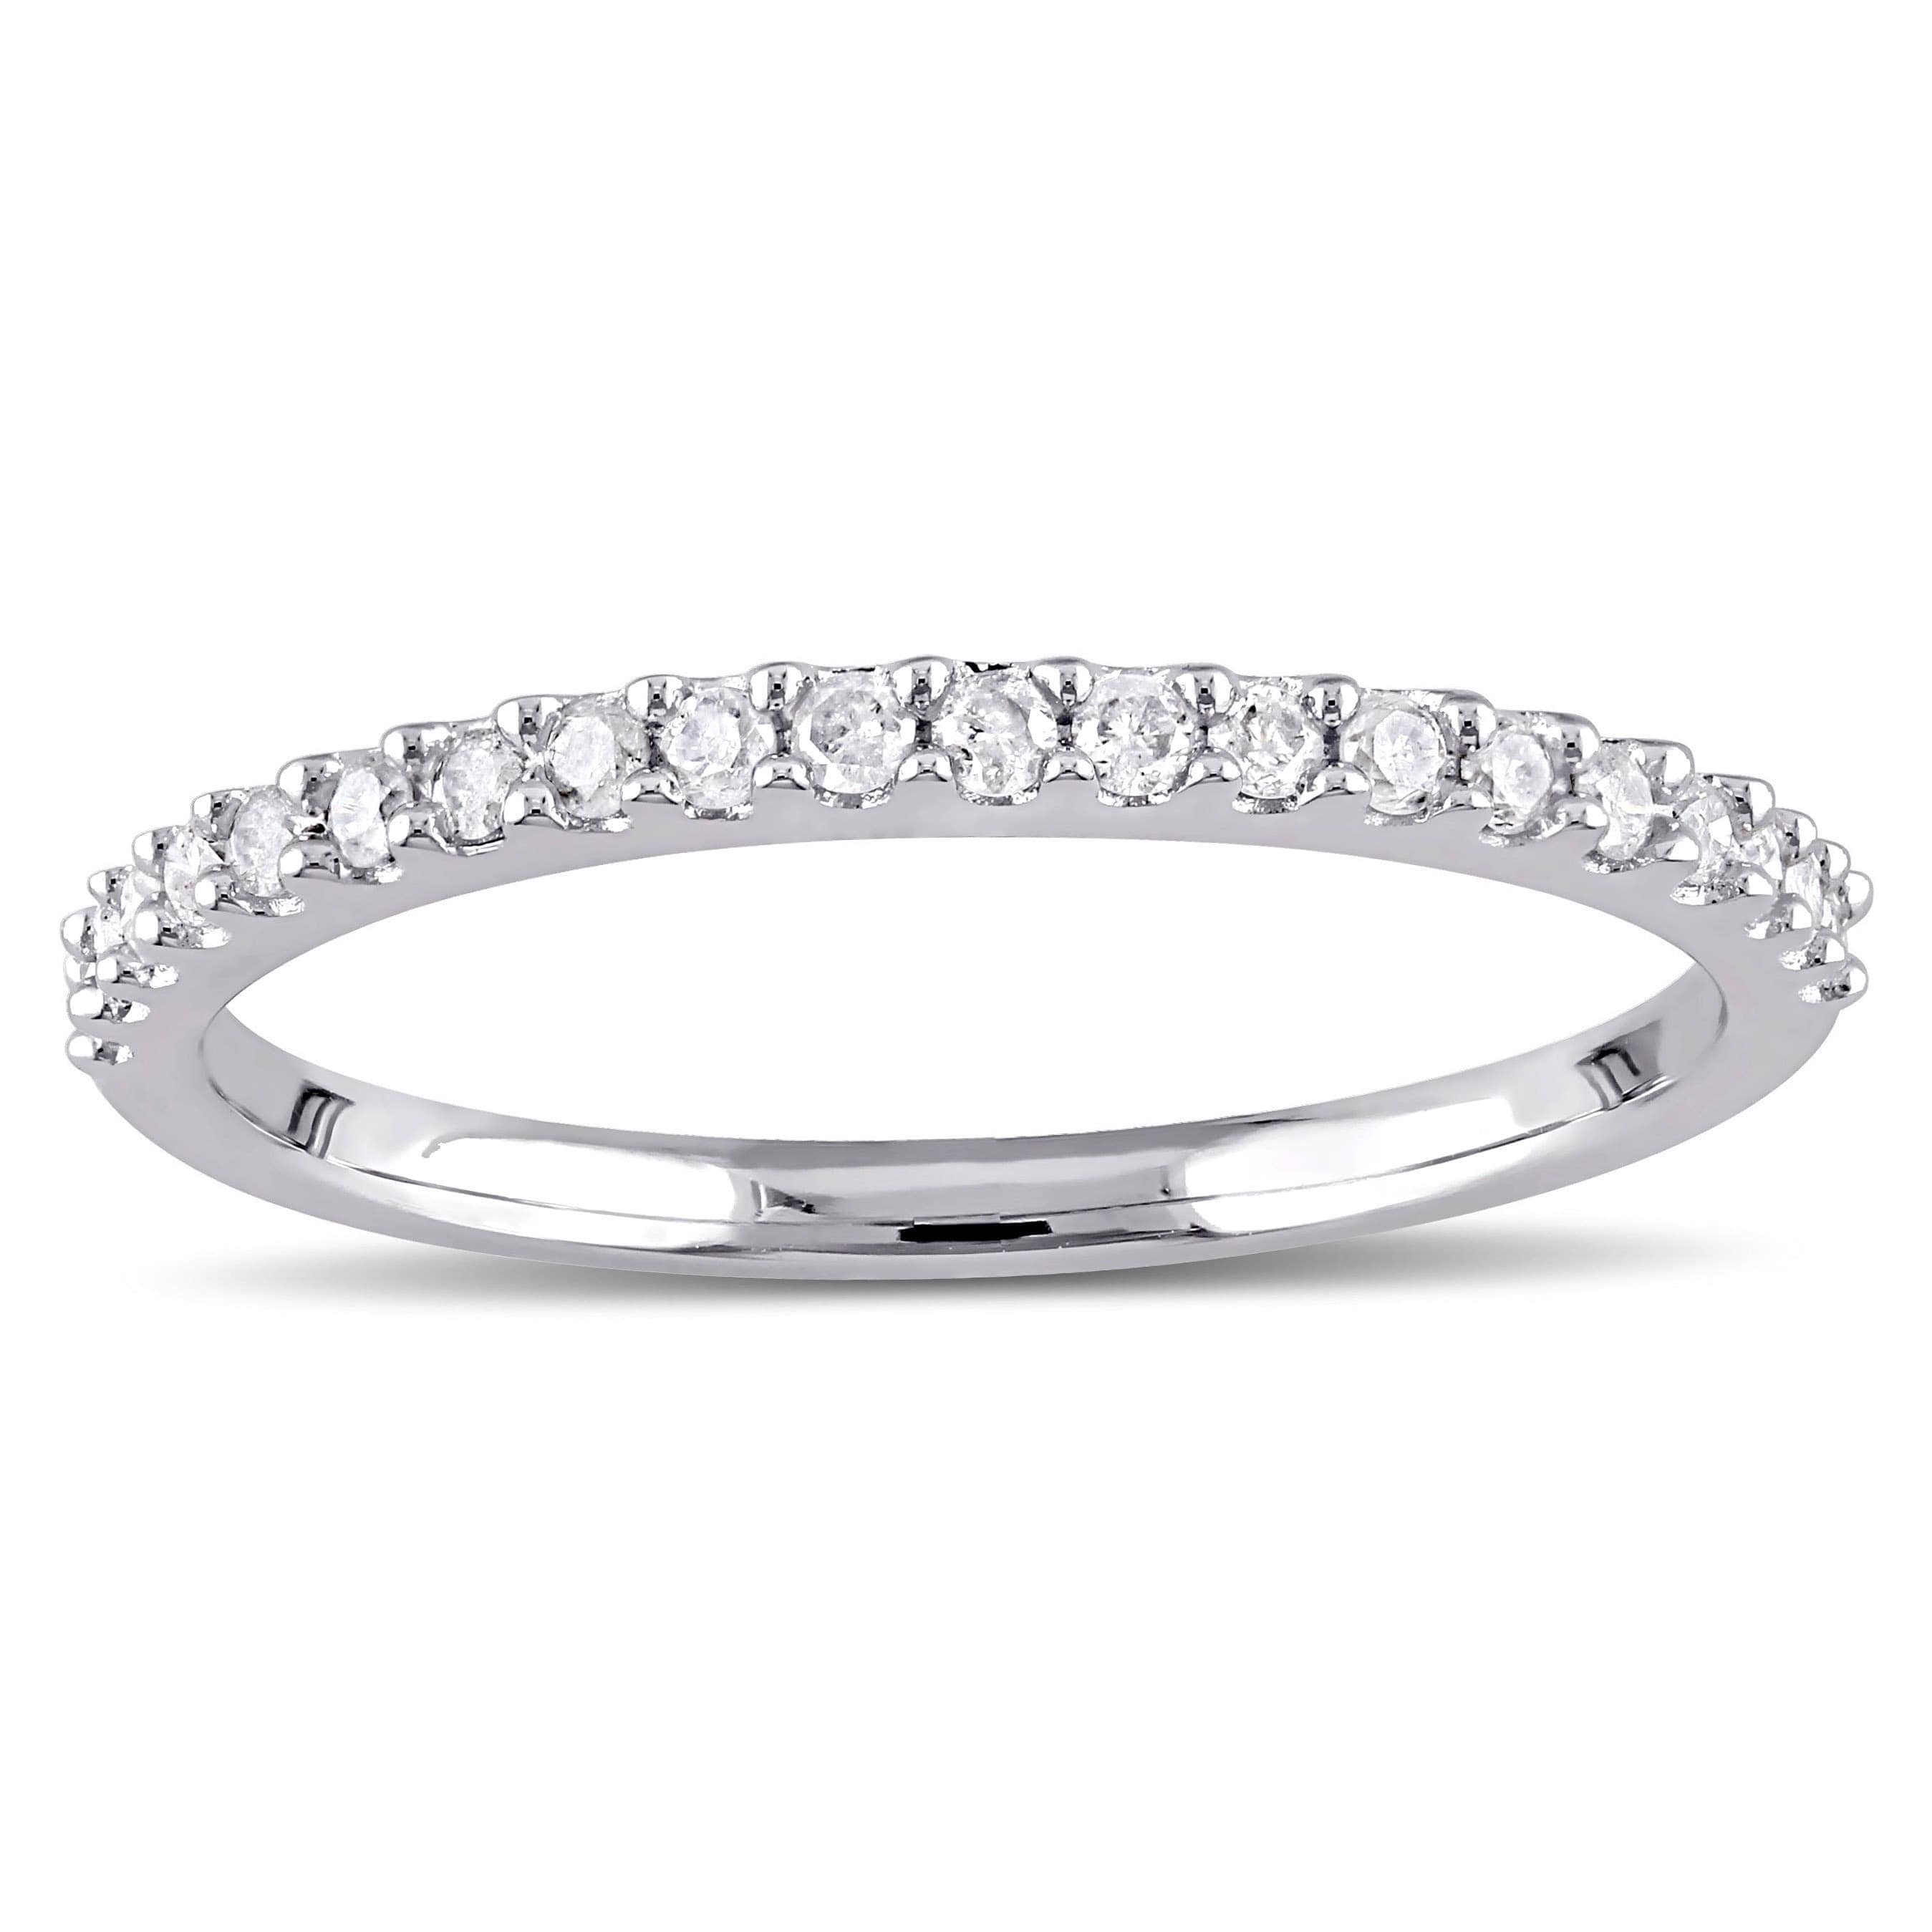 Stackable Wedding Bands.Miadora 10k White Gold 1 5ct Tdw Diamond Stackable Wedding Band